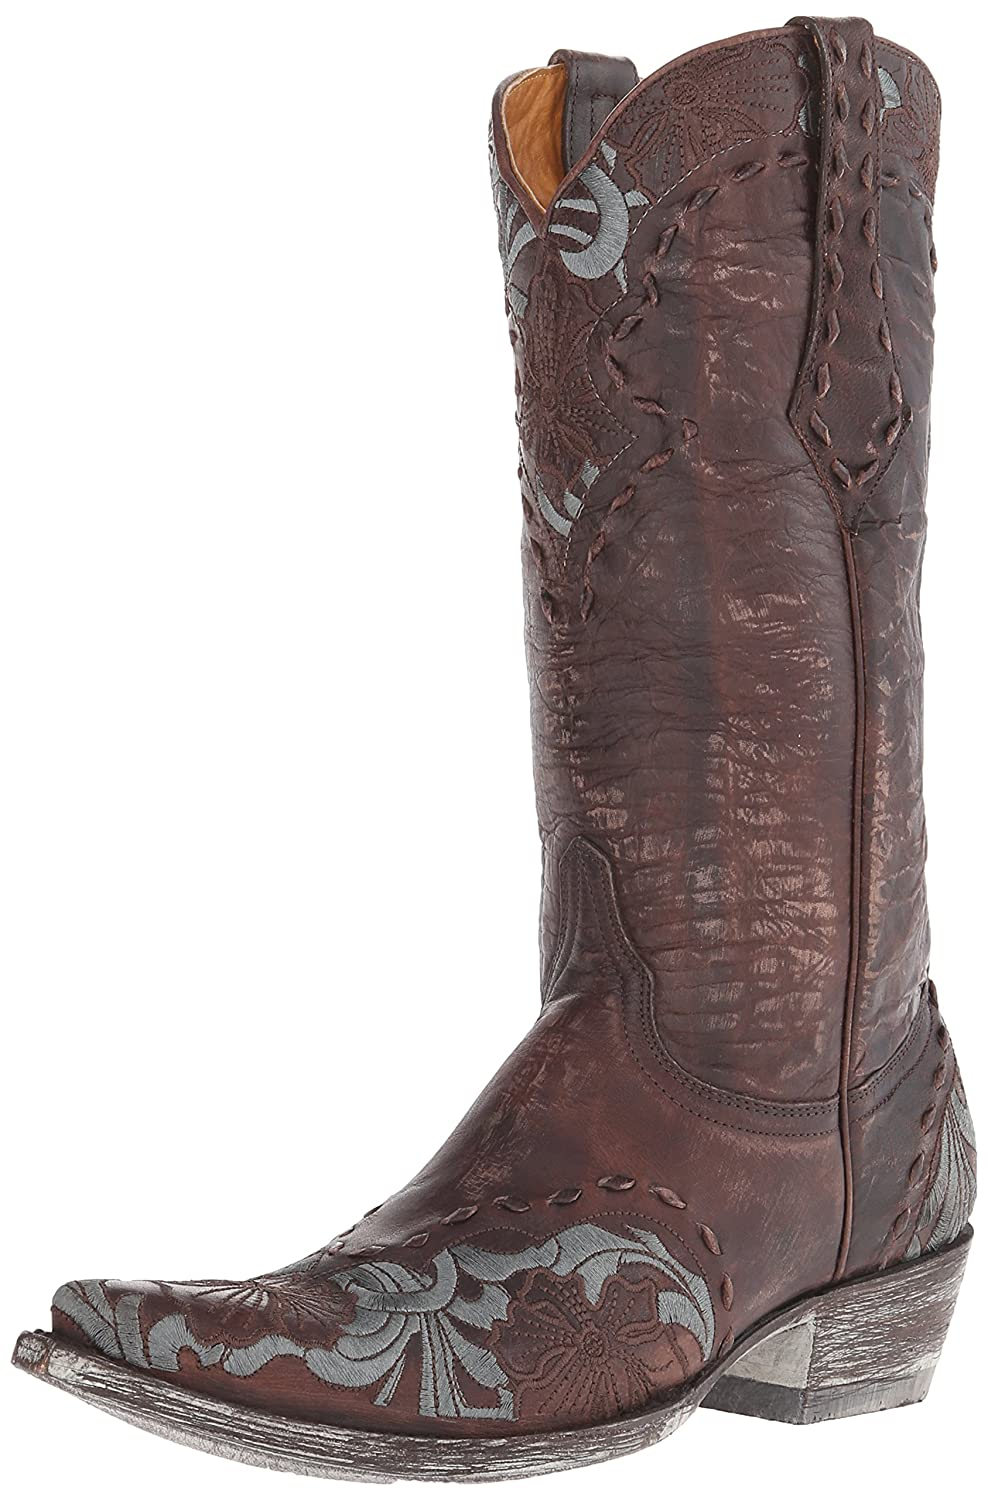 Old Gringo Women's Erin Western L640 Boot B0059NTLY4 7 B(M) US|Chocolate